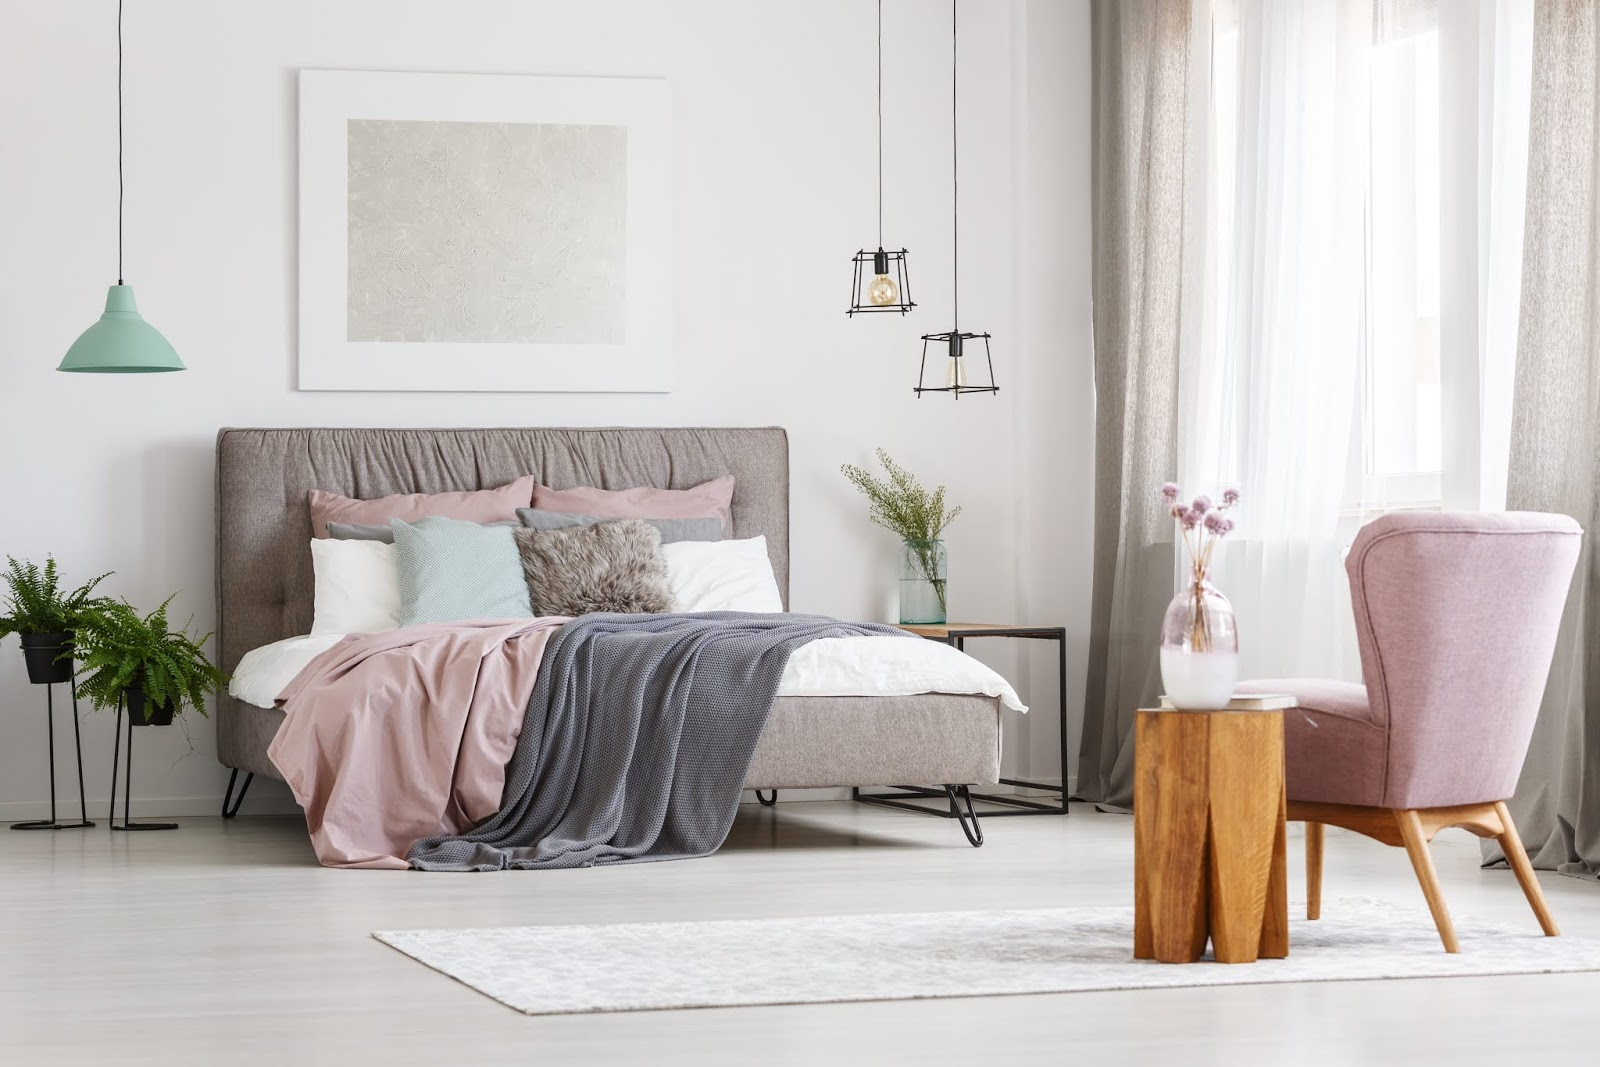 How to use soft furnishings to transform your bedroom and aid a good nights sleep